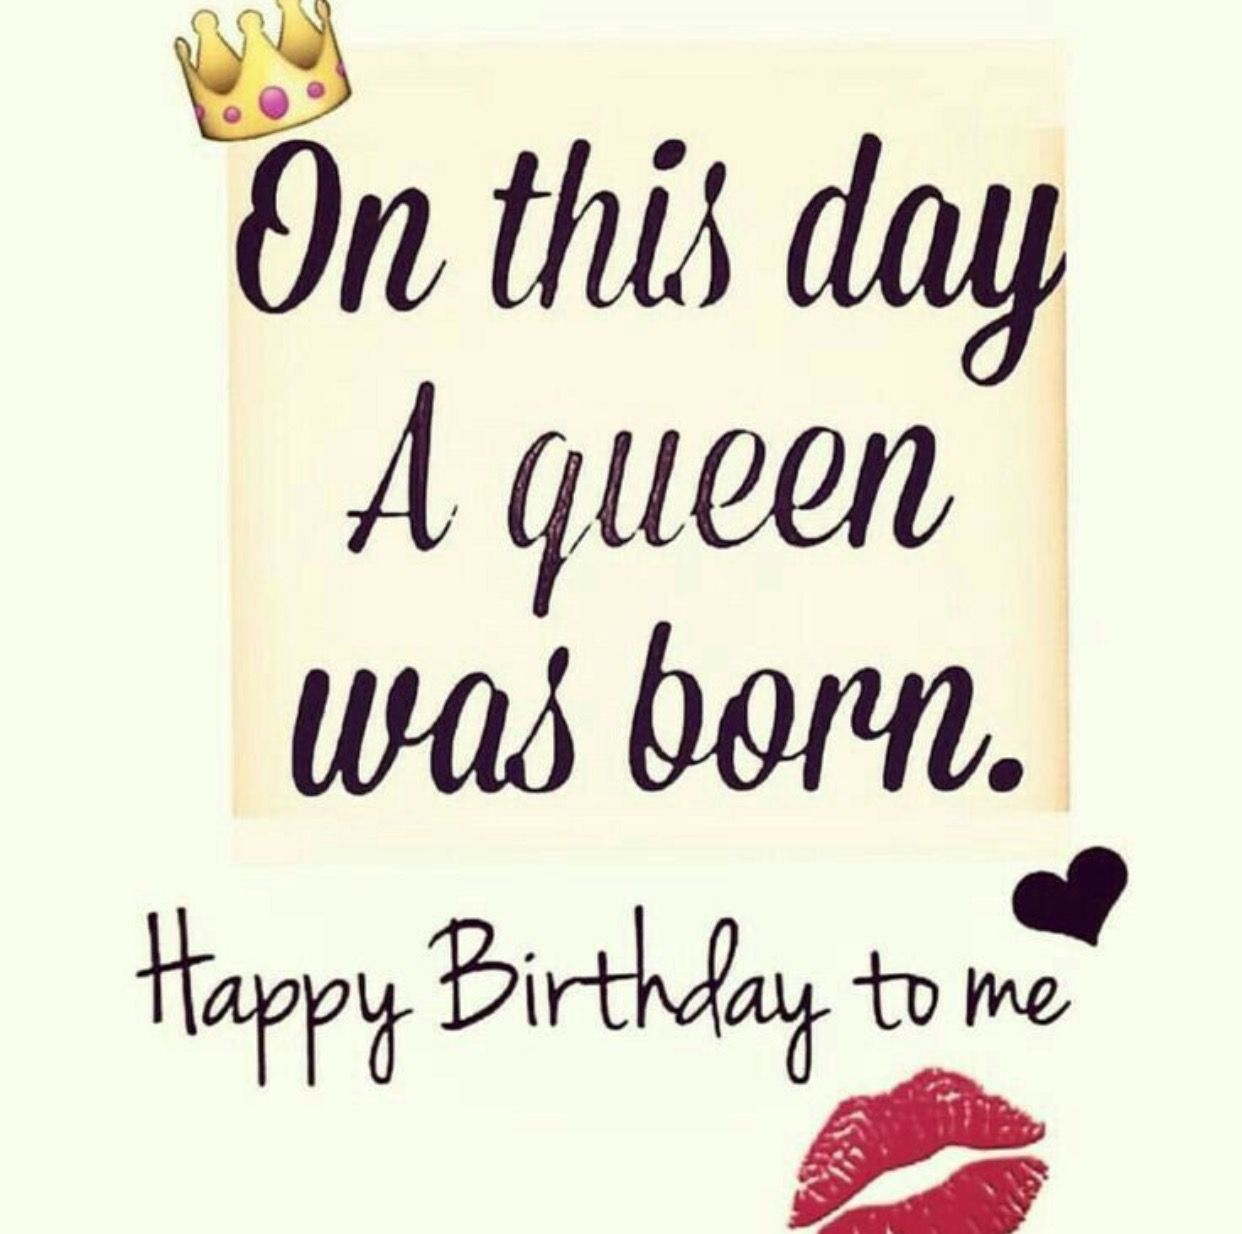 Astonishing Happy Birthday To Me With Images Birthday Quotes For Me Personalised Birthday Cards Paralily Jamesorg